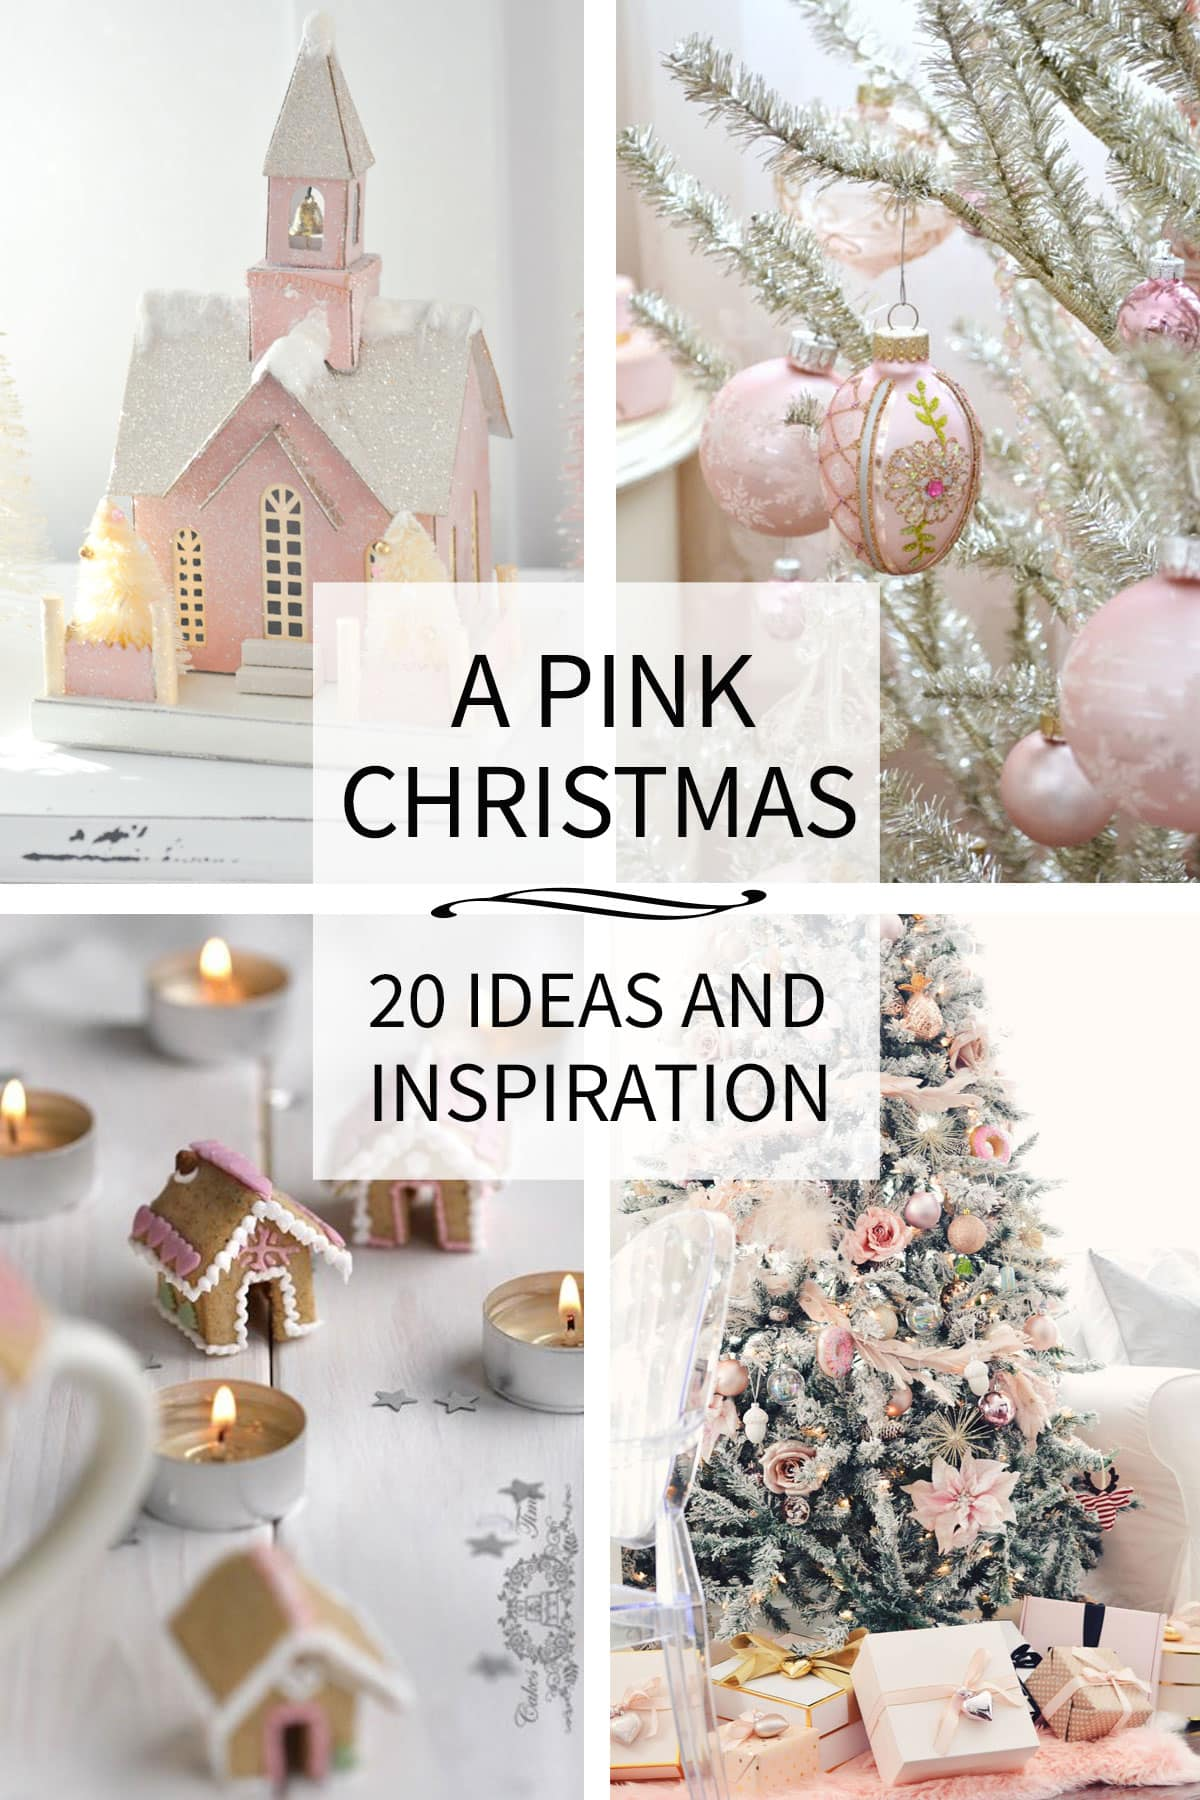 Pink Christmas Inspiration and Ideas - Tidbits